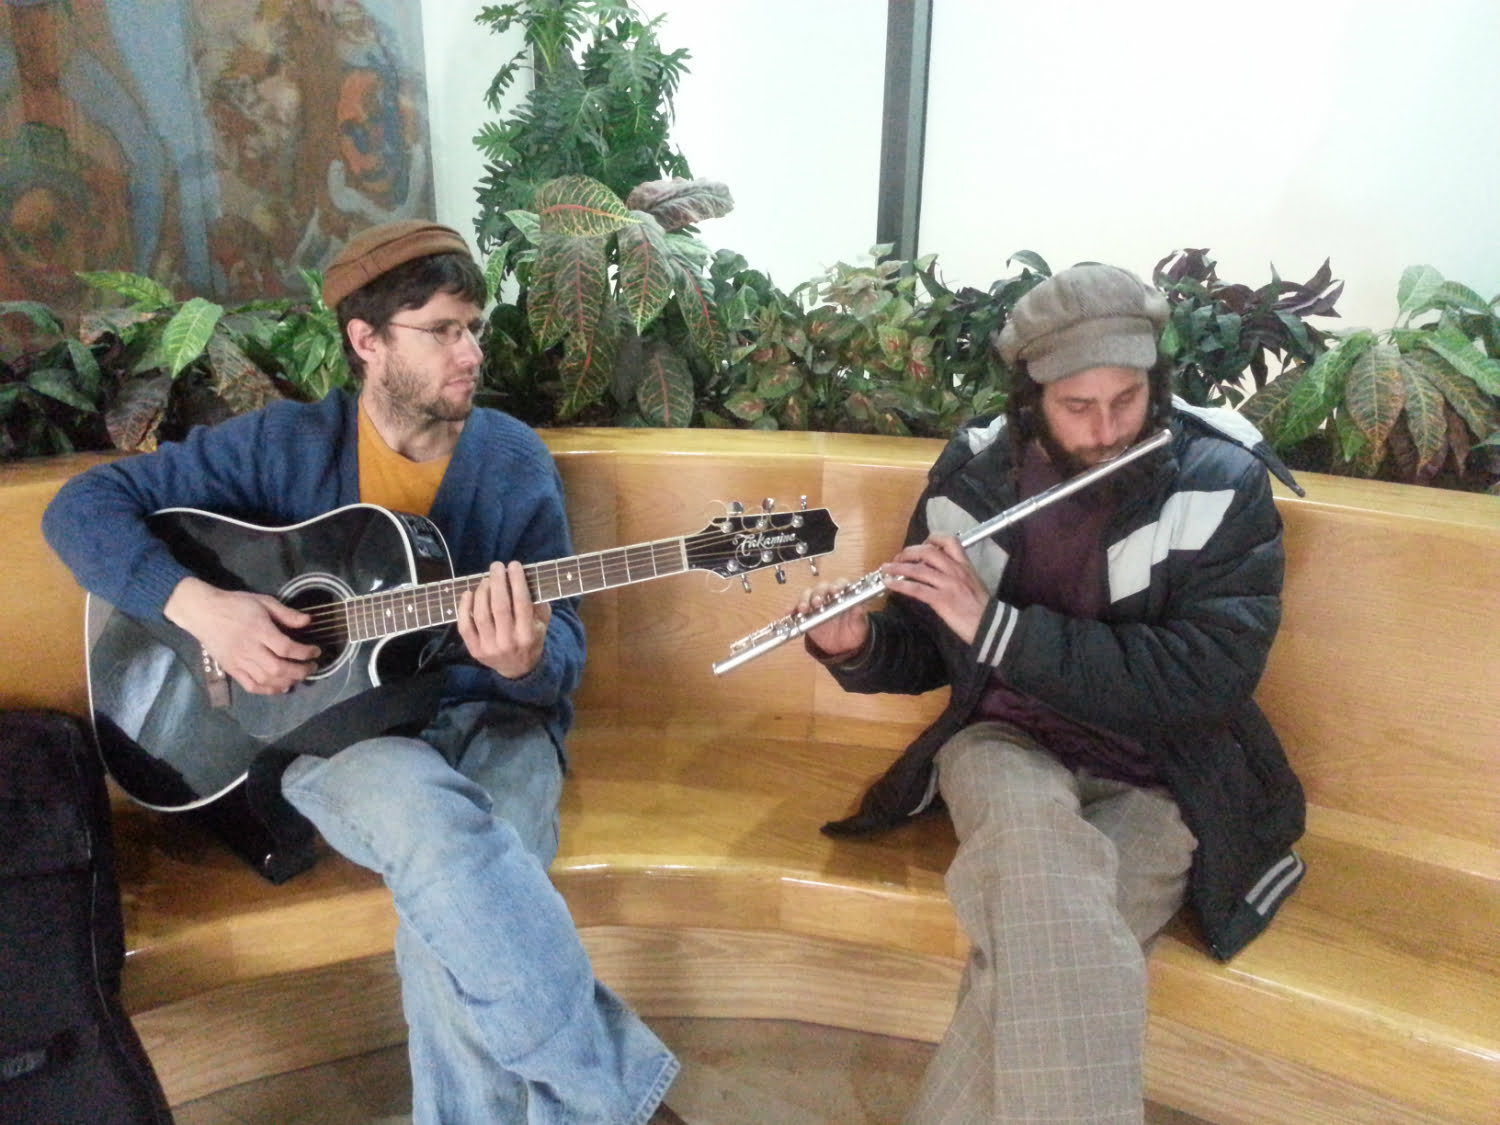 Health News: Musicians Use Their Craft To Ease The Pain Of Medical Patients